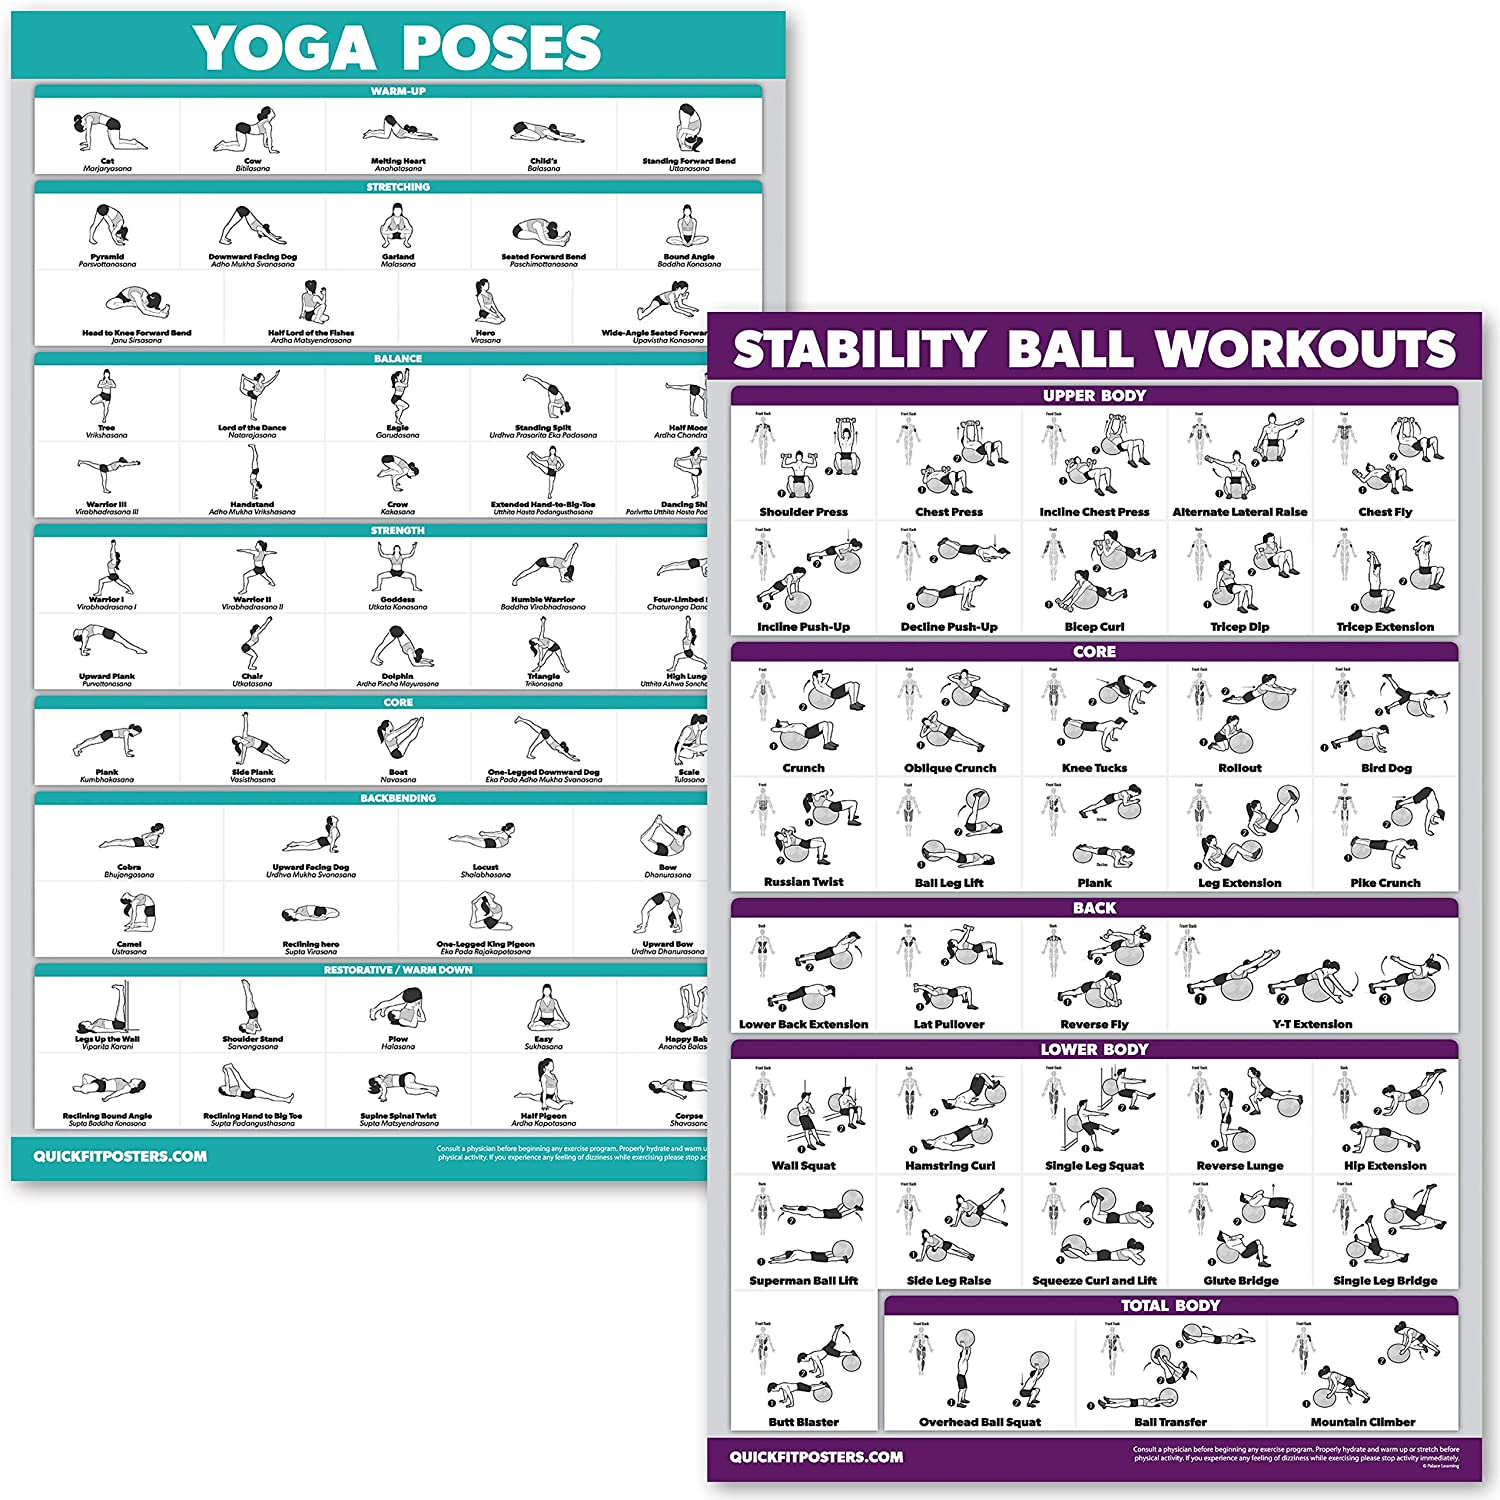 QuickFit Yoga Poses and Exercise Ball Workout Posters - Laminated 2 Chart Set - Yoga Positions and Stability Ball Routine - 18